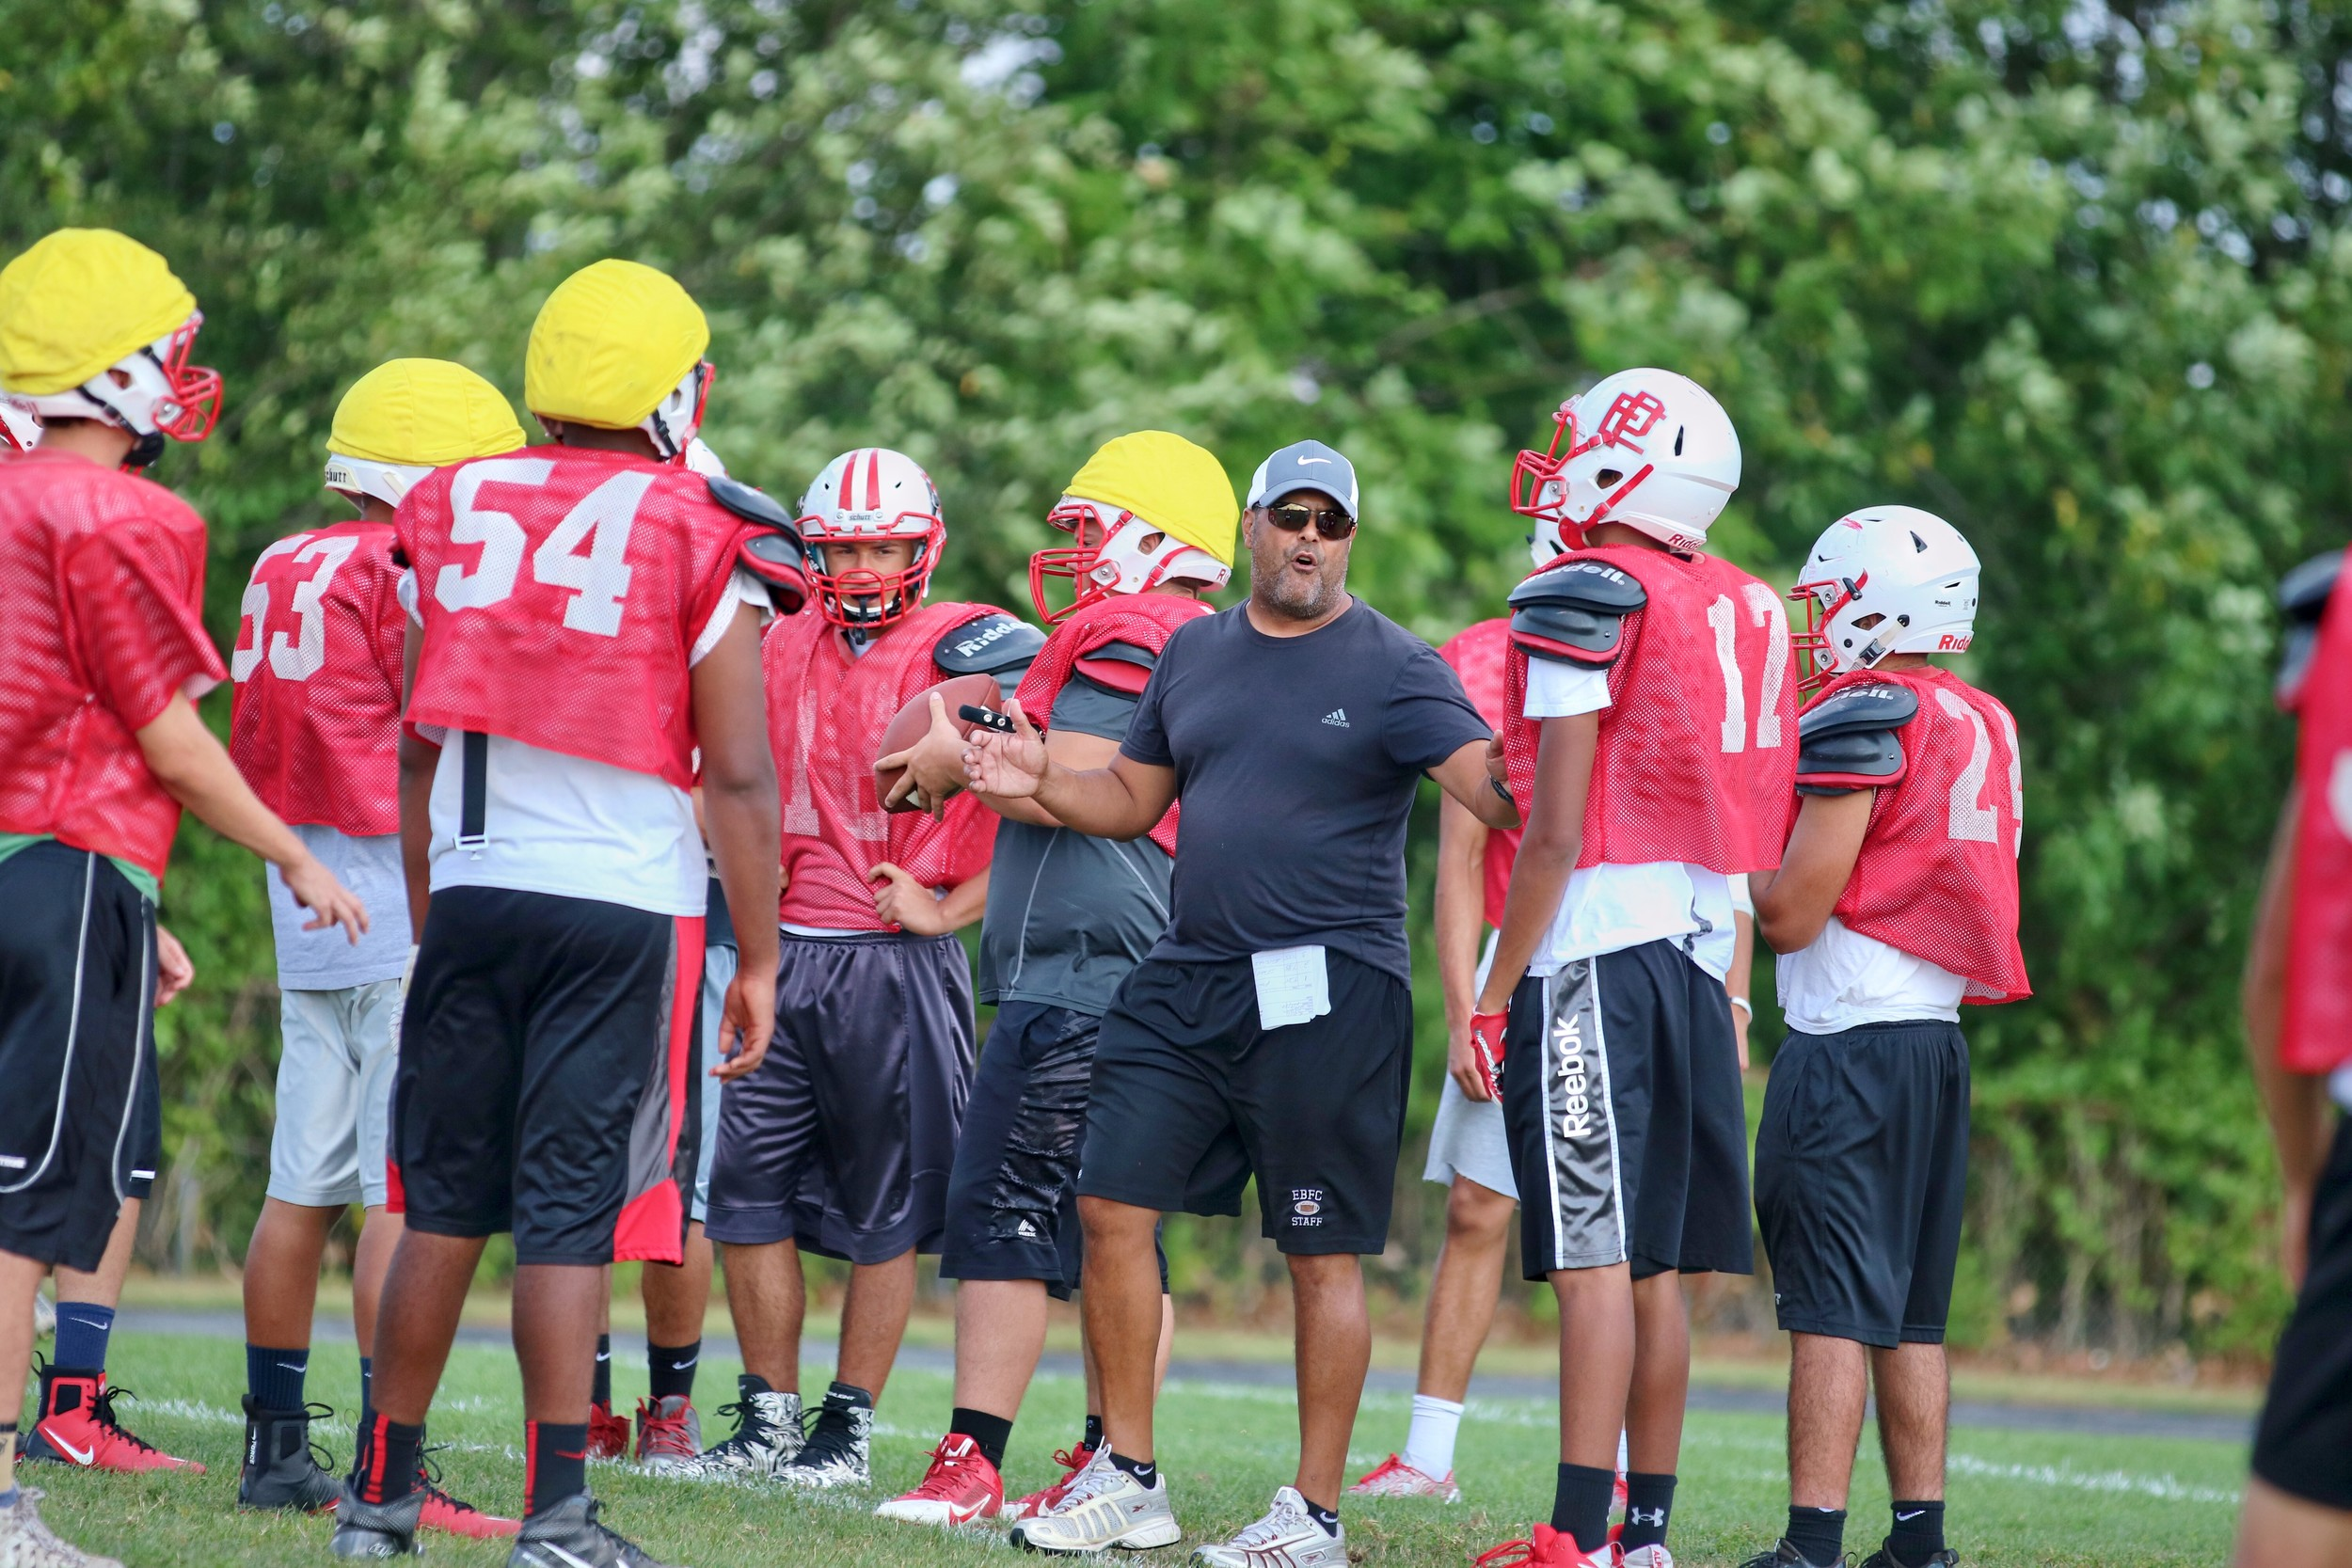 EPHS head Coach Jay Monteiro during pre-season football workouts for the Townies Photo by Paul Tumidajski.